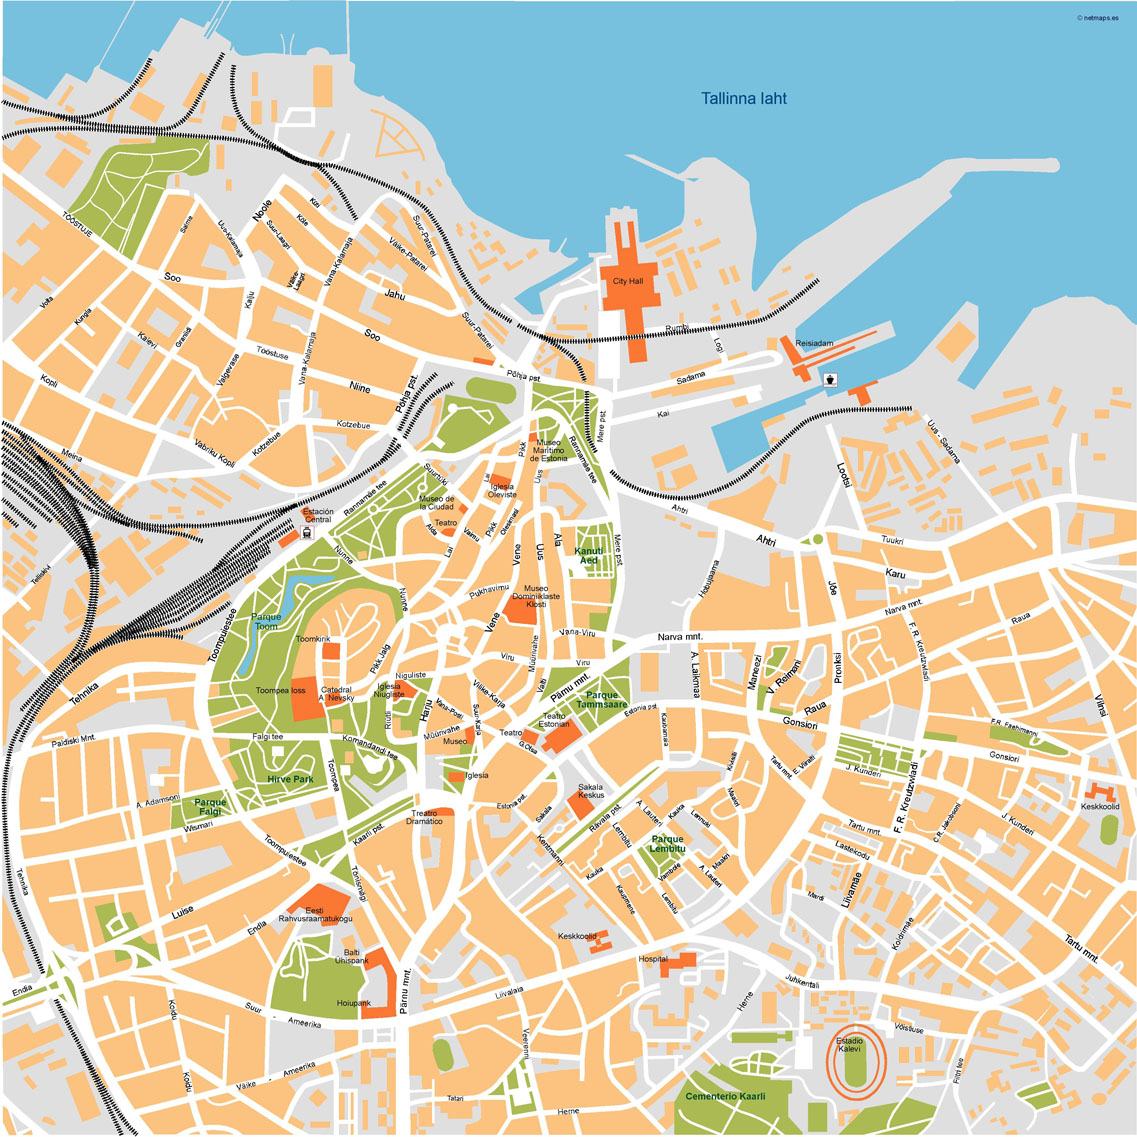 Tallinn Illustrator Map Order and Download Tallinn Illustrator Map